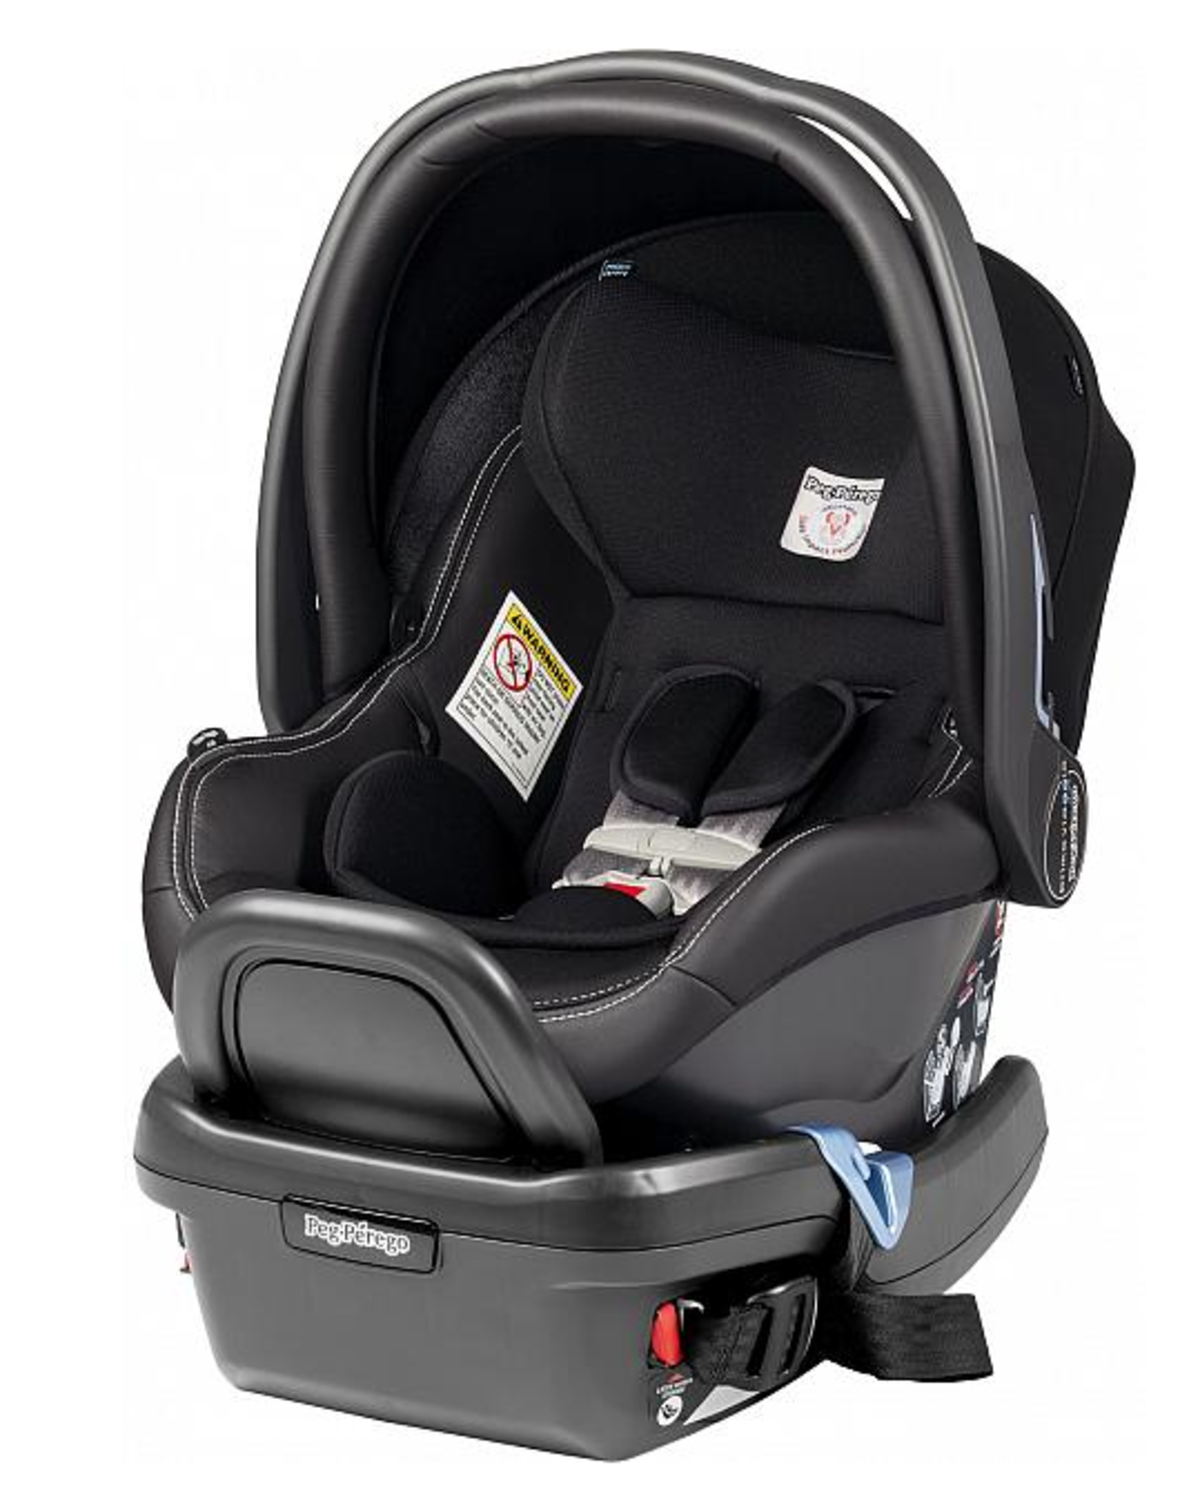 Headline for Safest Car Seats For Infants 2014